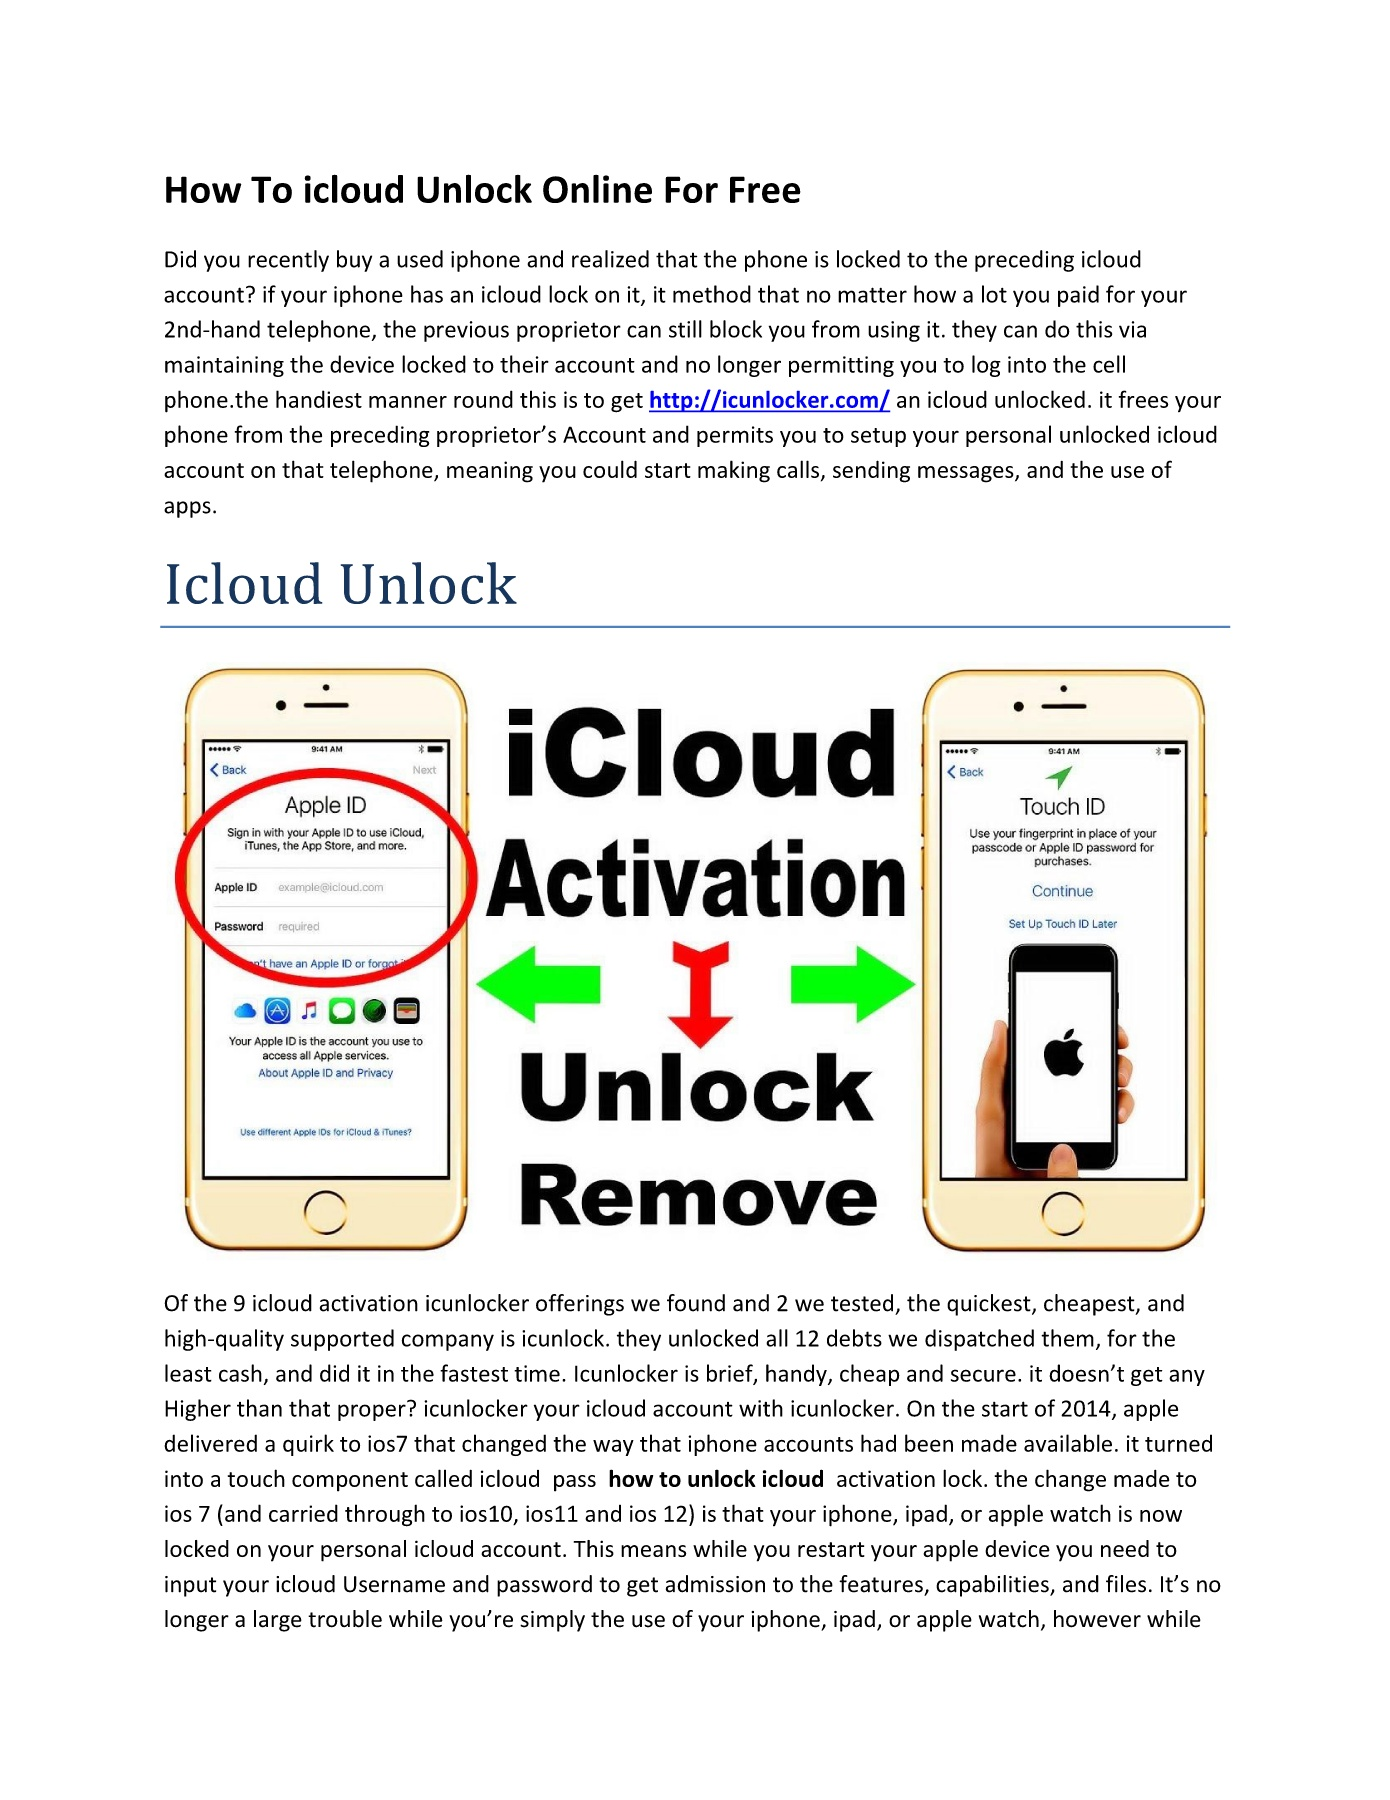 Icloud Unlock Pages 1 - 4 - Text Version | AnyFlip